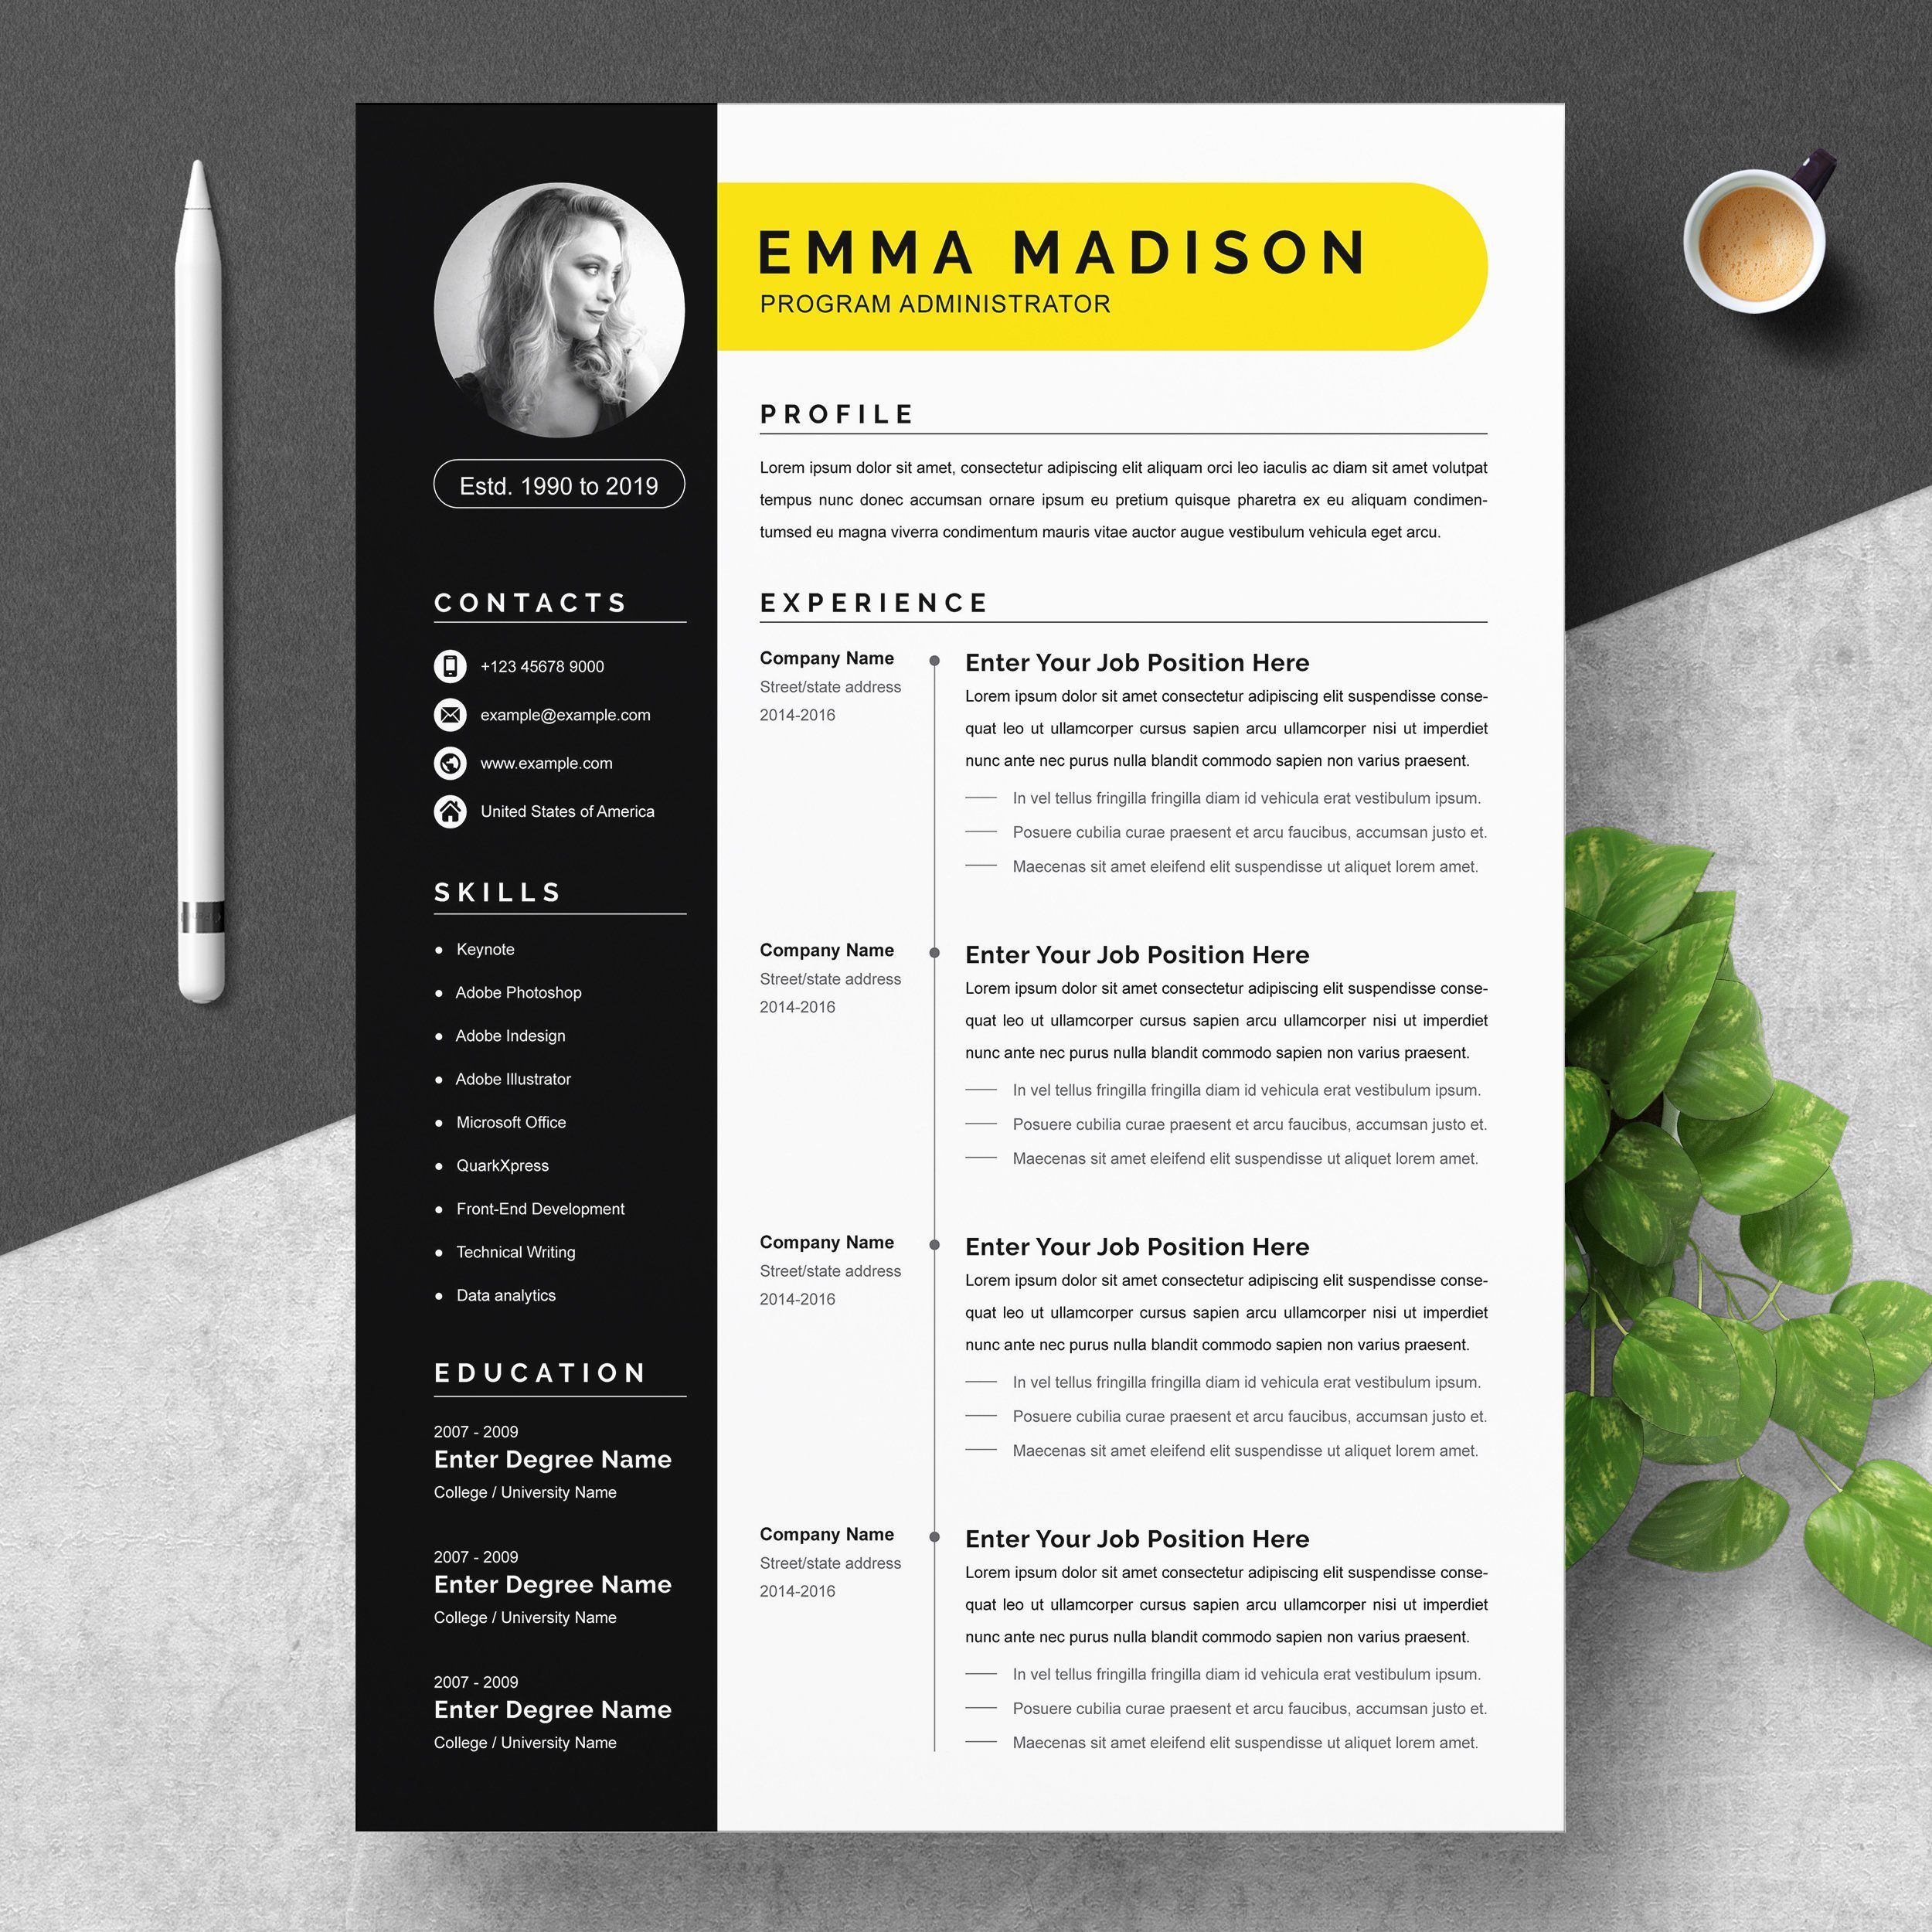 000 Breathtaking Resume Template Word 2007 Free Highest Clarity  Microsoft Office For MFull